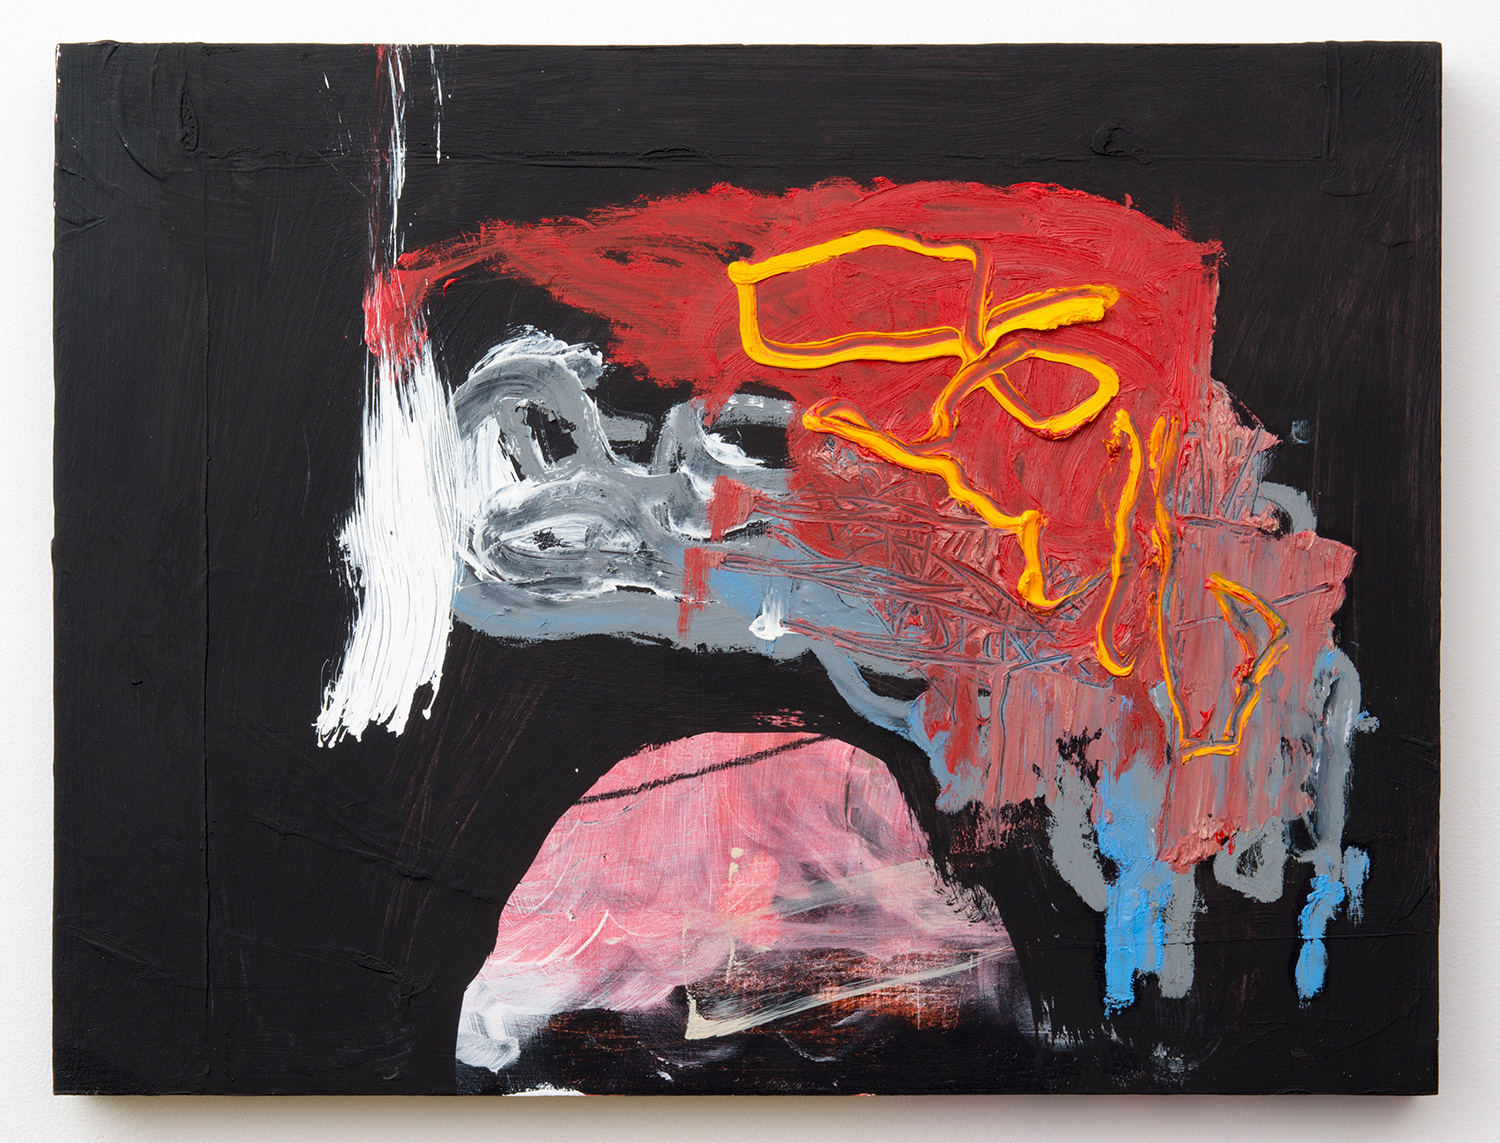 """GUTTED . Acrylic, oil on panel. 15.5"""" x 19"""" x 1.5"""". 2014."""